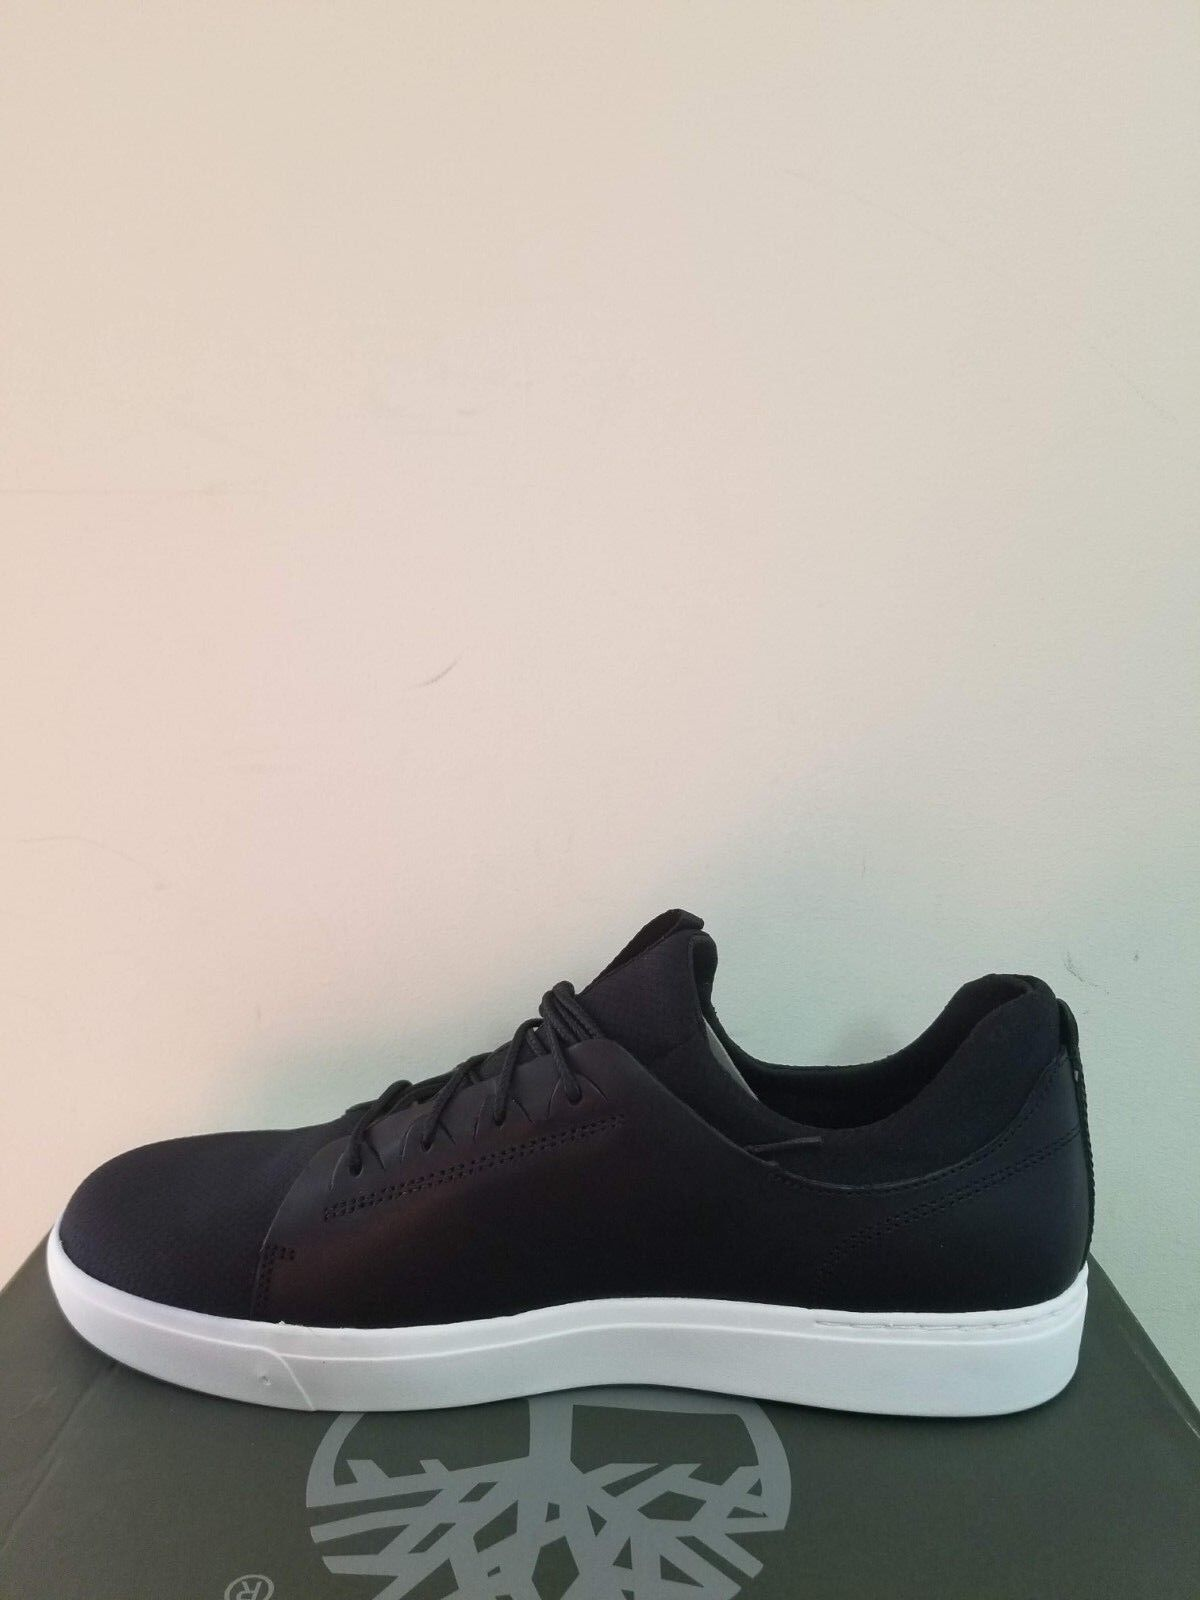 Timberland Men's New  Amherst Oxford Shoes NIB 1